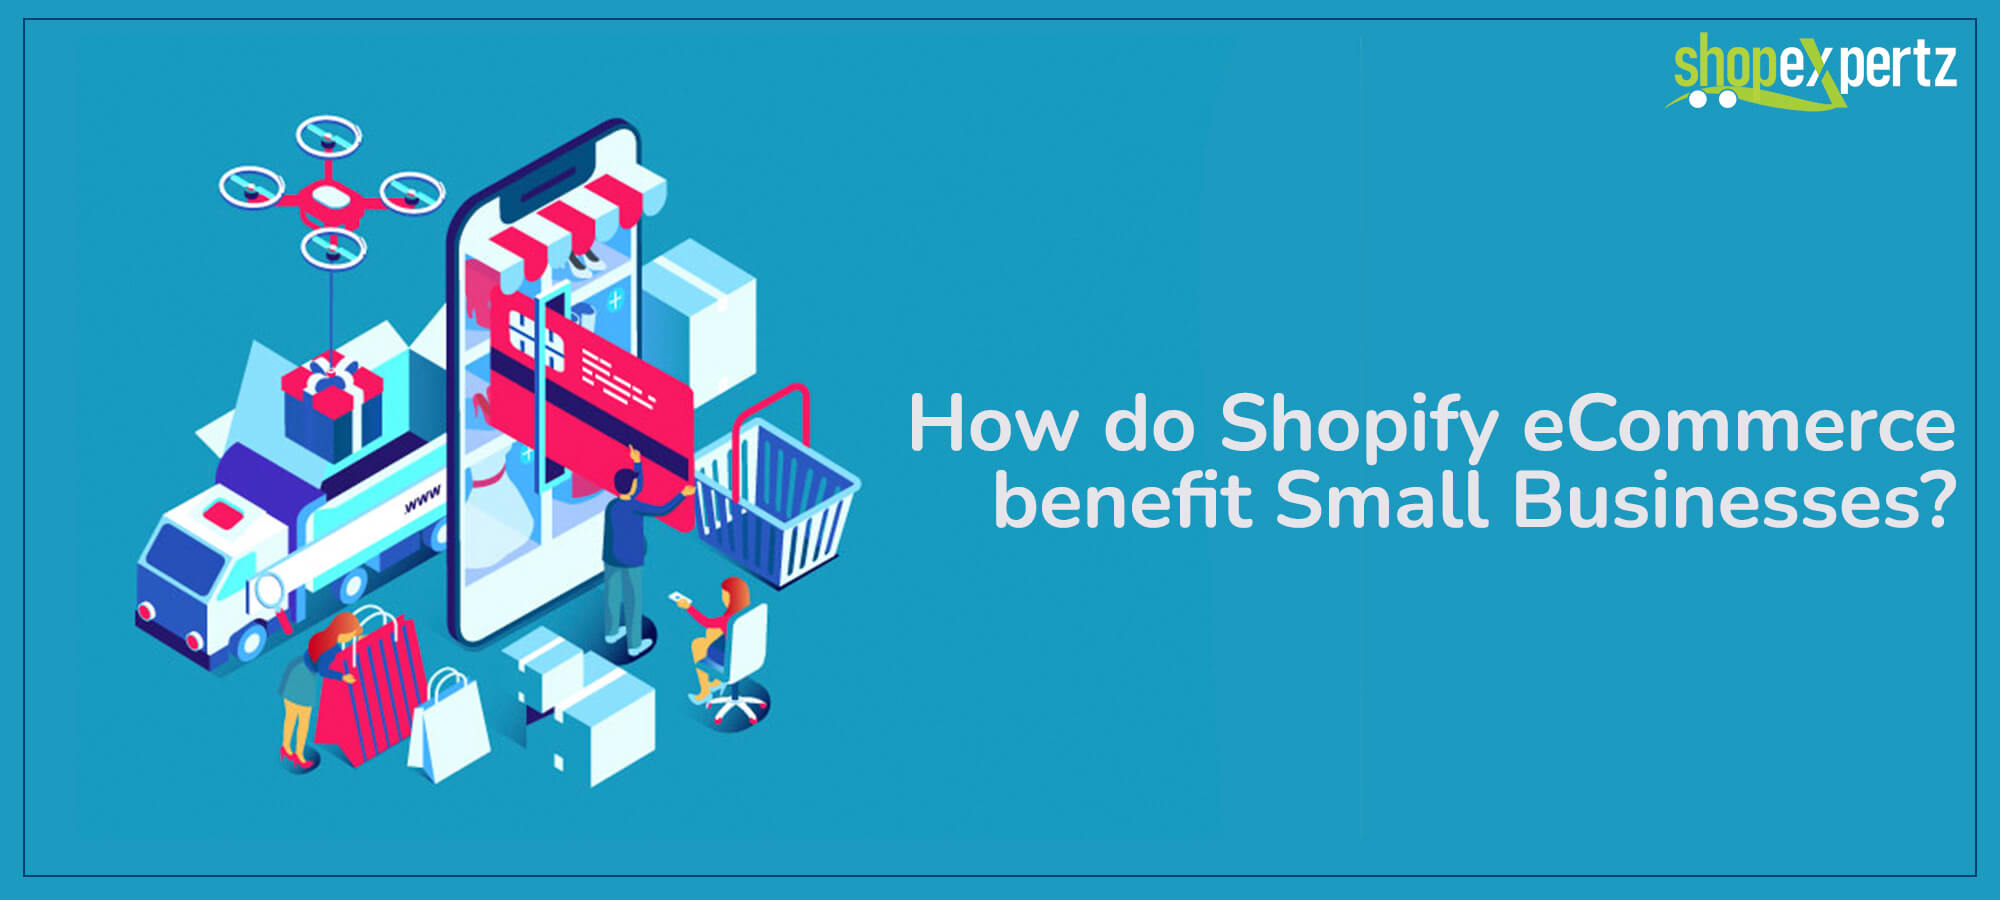 How do Shopify eCommerce benefit Small Businesses?